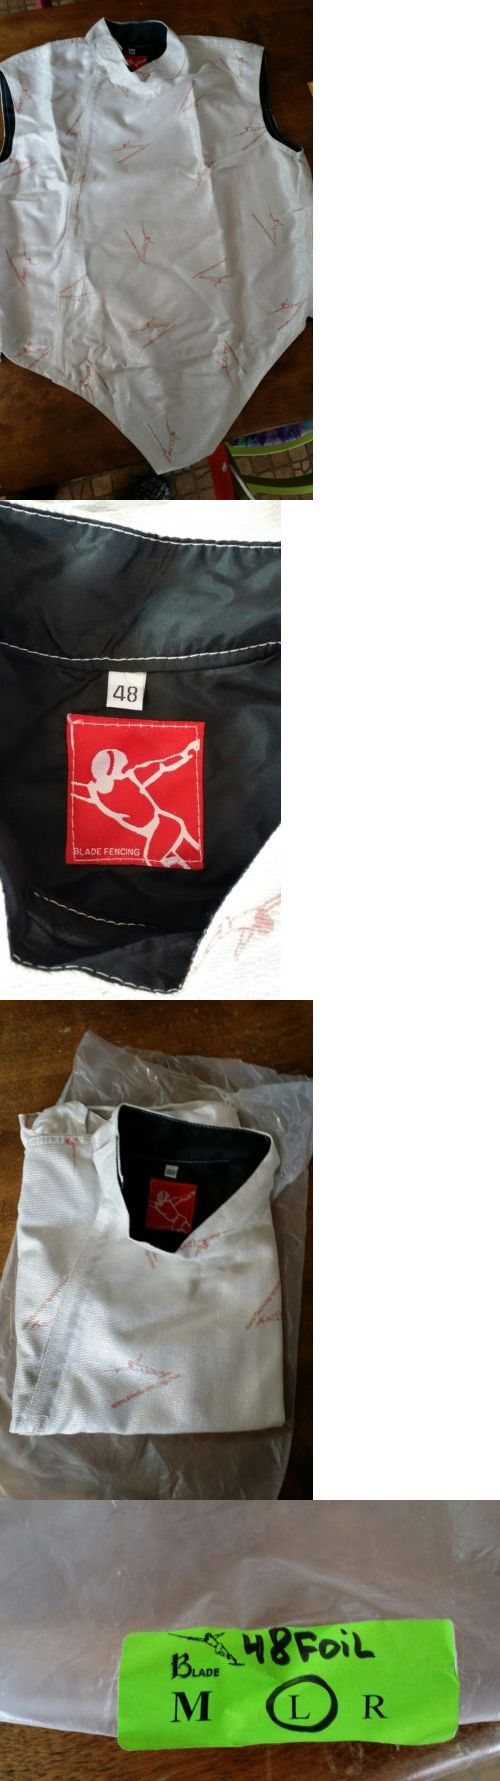 Fencing 47322: Blade Foil Lame For Left Handed Men Size 48 -> BUY IT NOW ONLY: $49 on eBay!